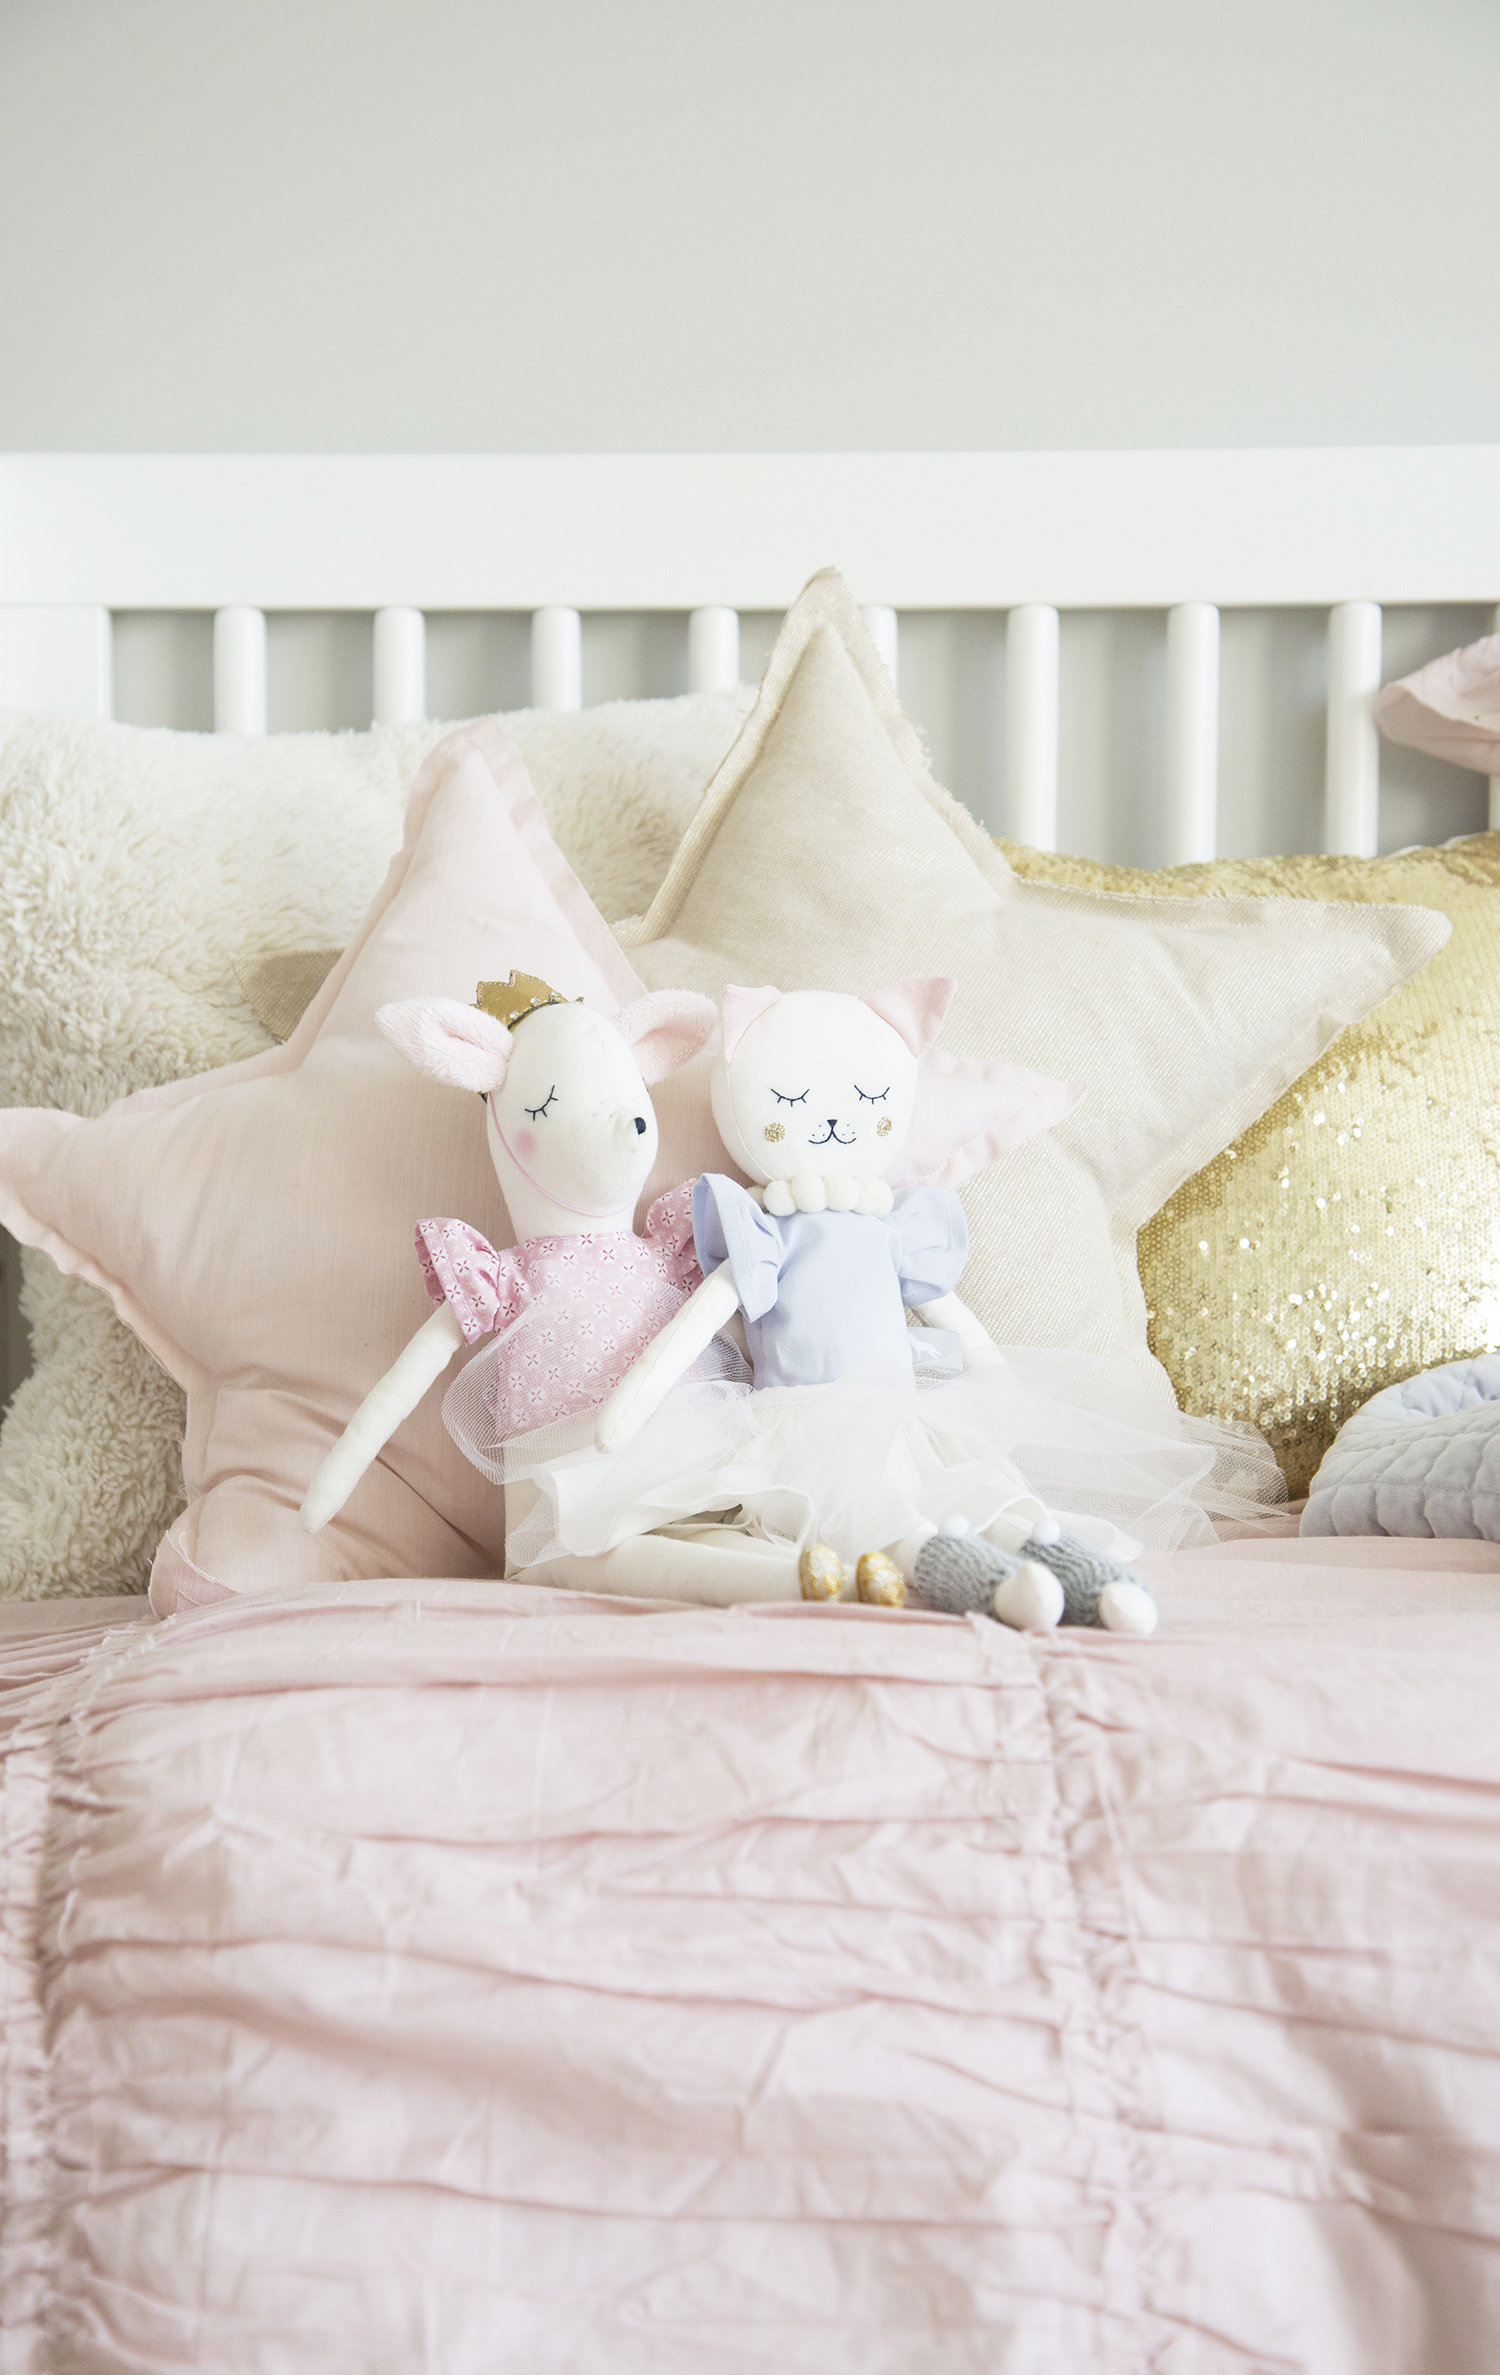 deer and kitty stuffed animals on daybed